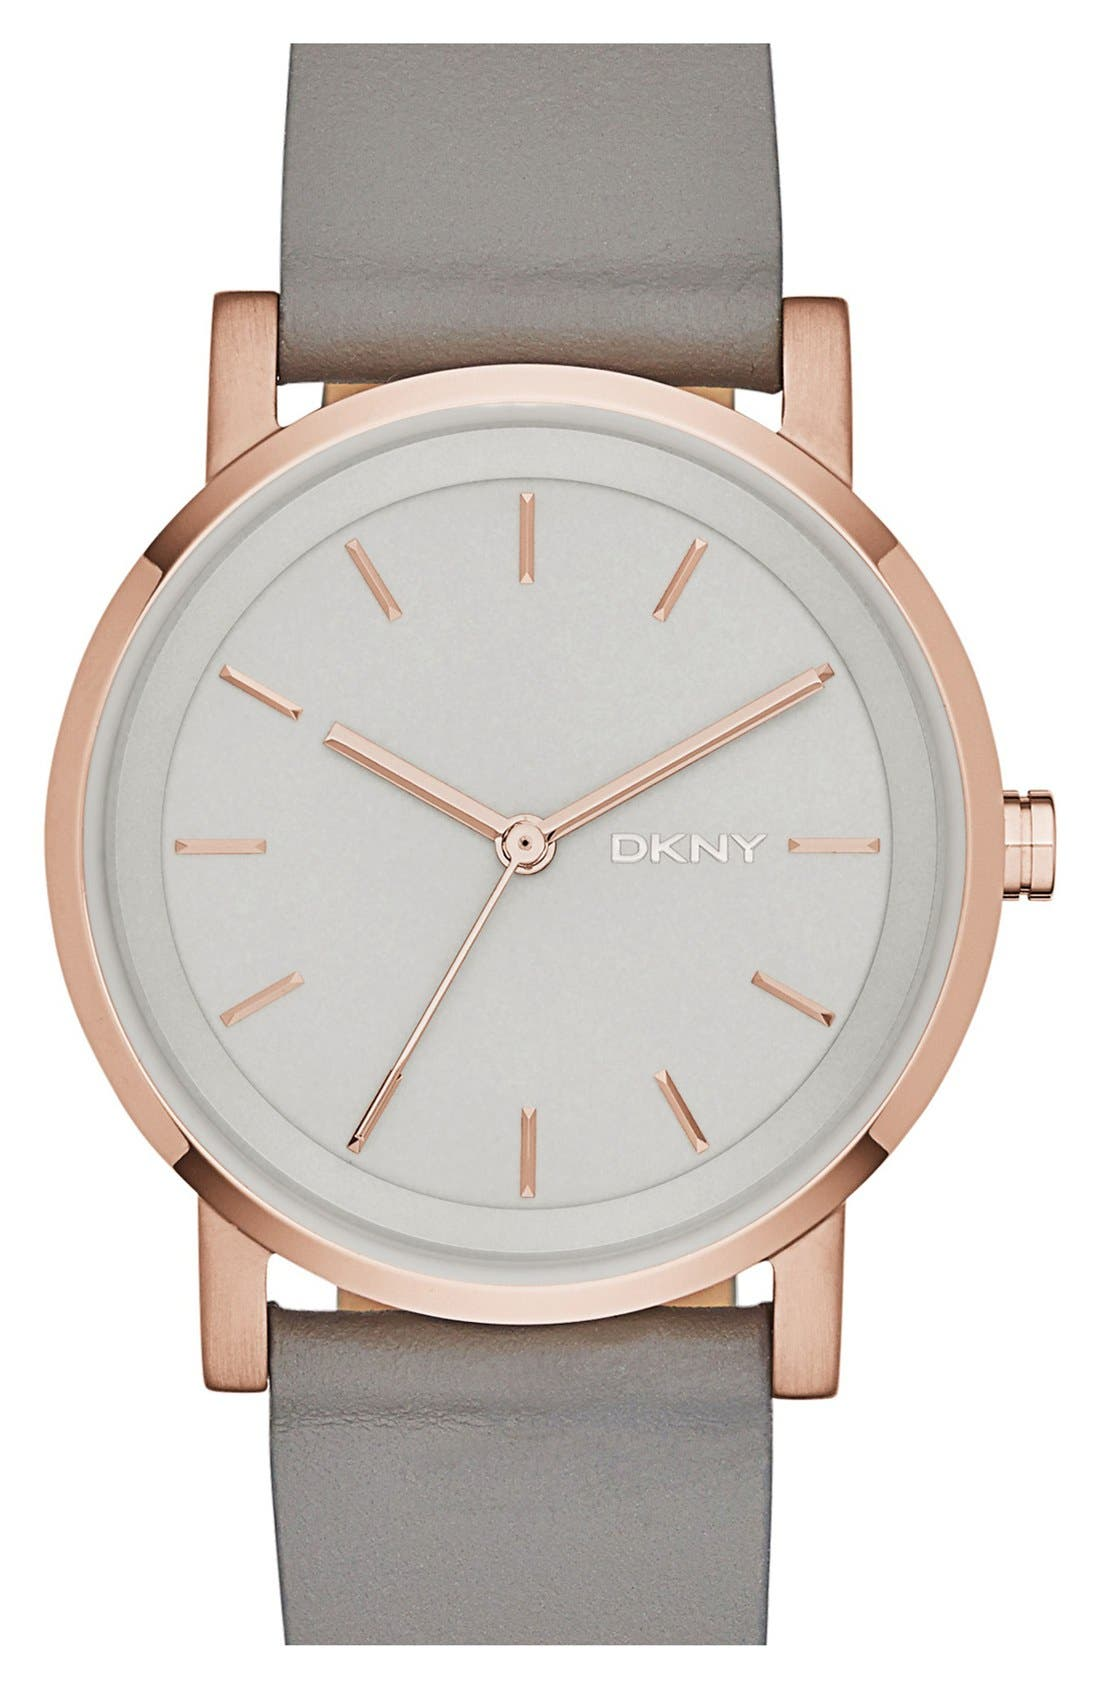 Main Image - DKNY 'Soho' Round Watch, 34mm